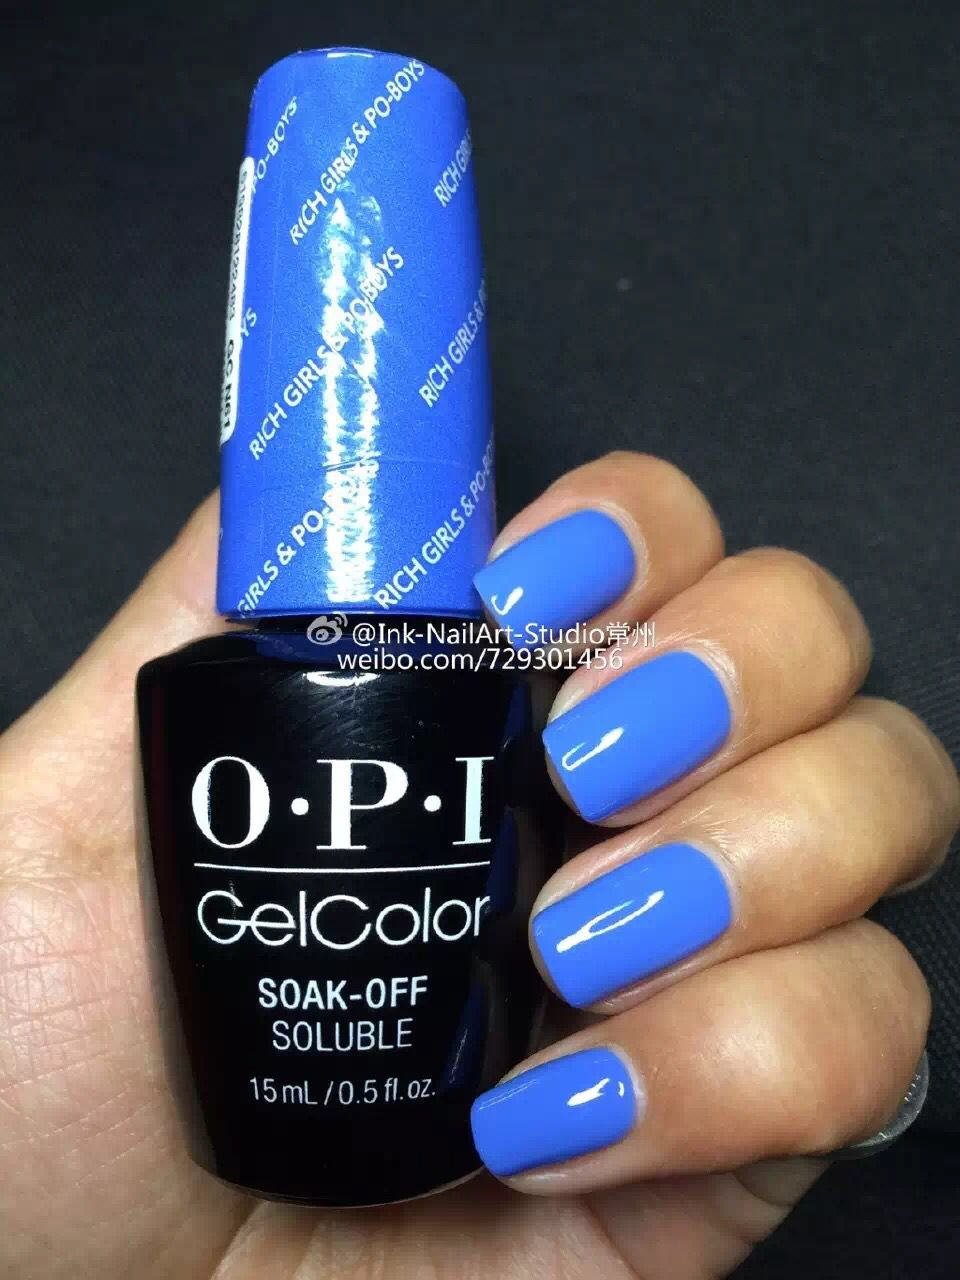 OPI New Orleans | OPI Gelcolor | Pinterest | OPI, Opi gel colors and ...